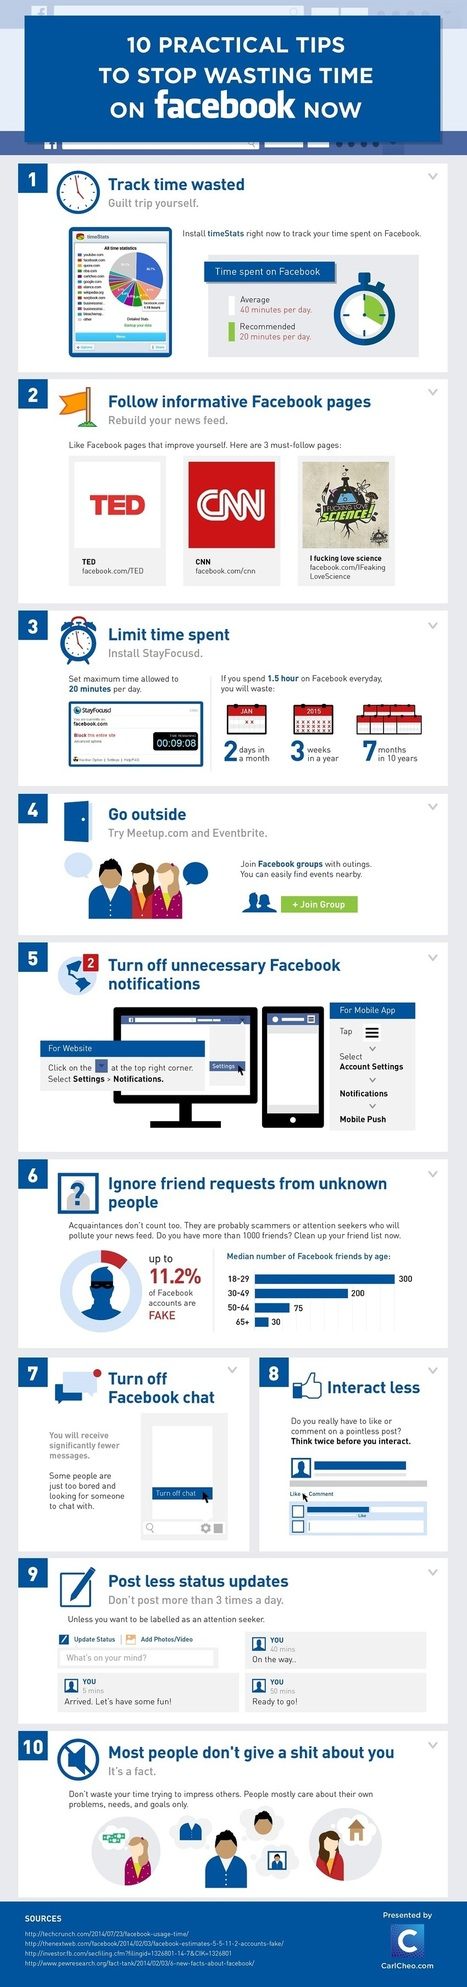 10 Tips To Stop Wasting Time on Facebook   Internet Psychology   Scoop.it